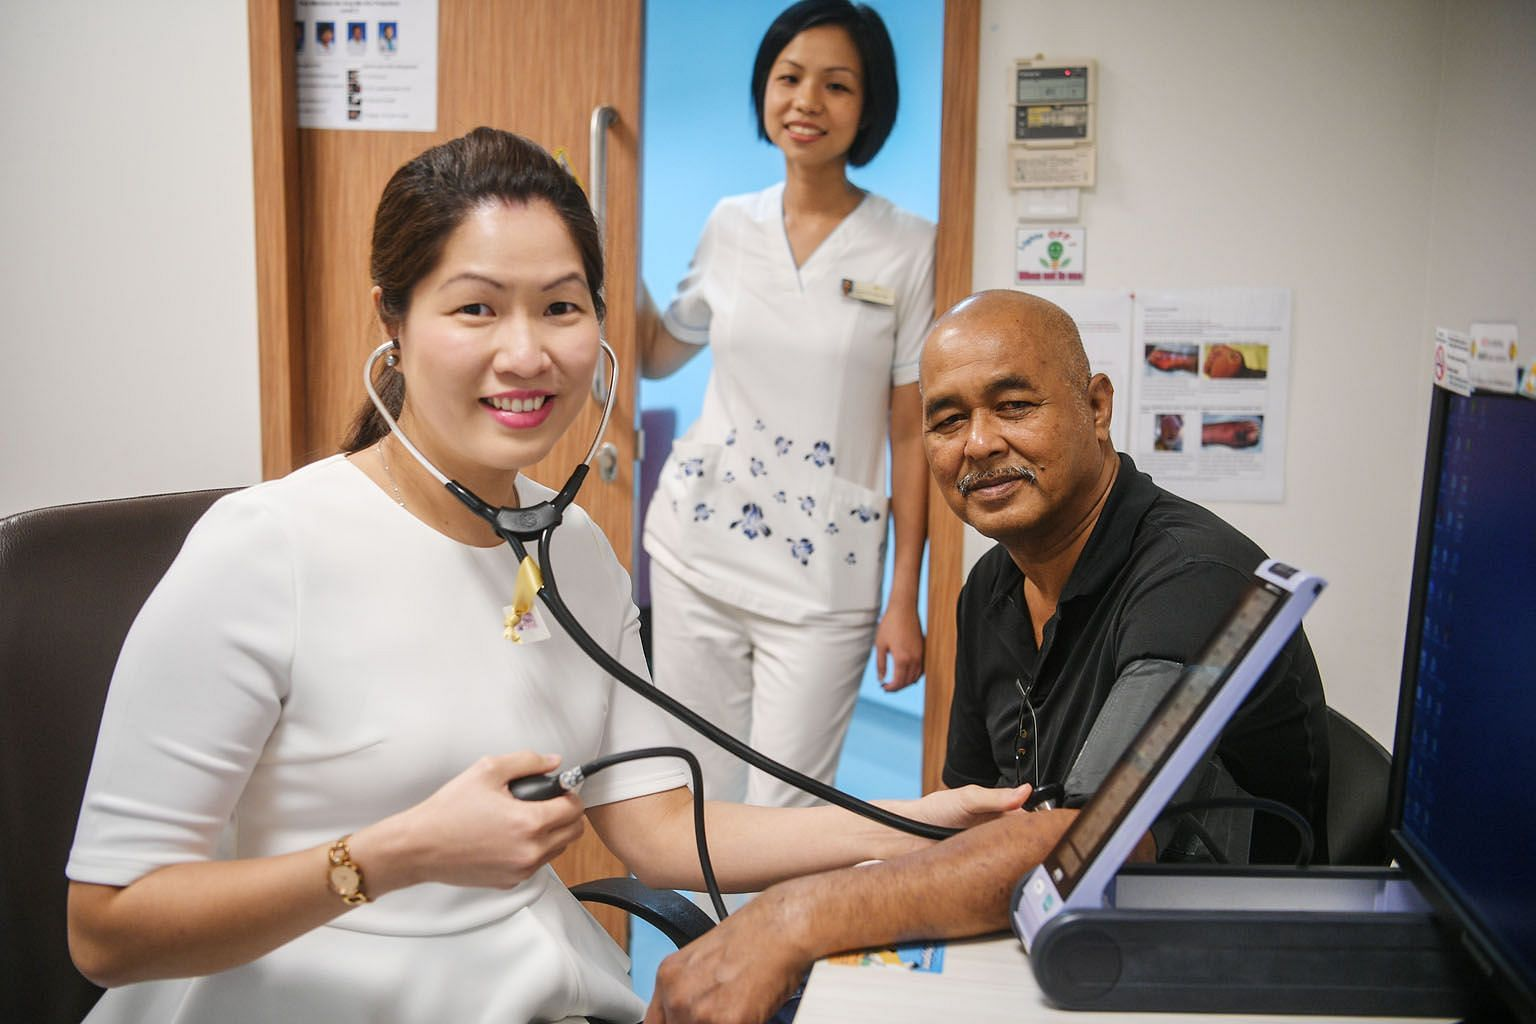 Dr Tricia Chang attending to Mr Adam Salim at Ang Mo Kio Polyclinic, with Senior Staff Nurse Evonne Oh looking on. Dr Chang said patients are more motivated and willing to take charge of their health.